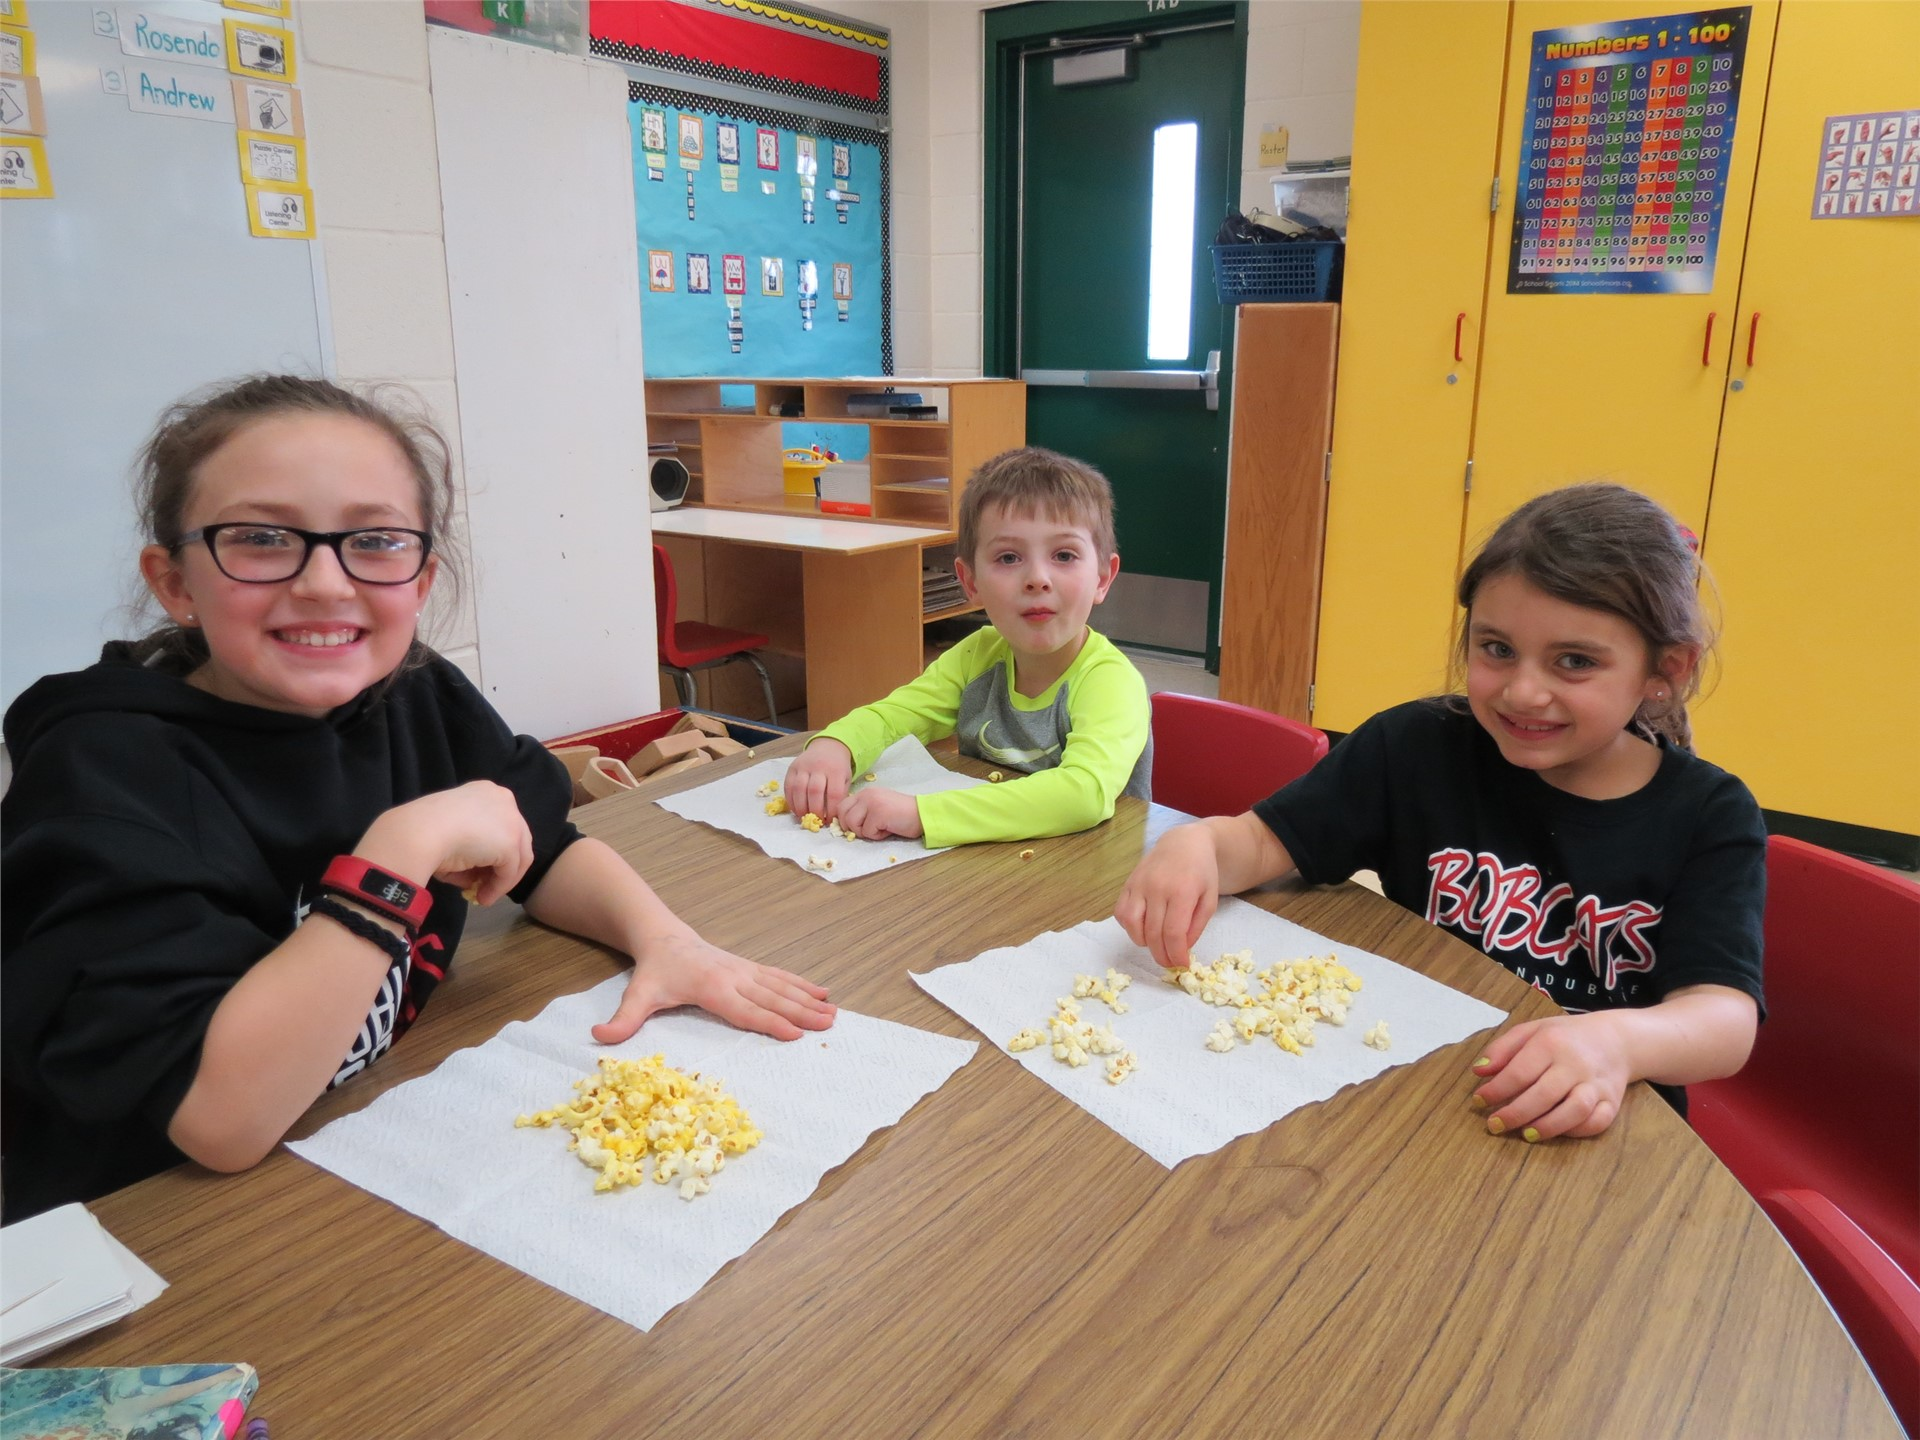 Kids eating popcorn during Bobcat families